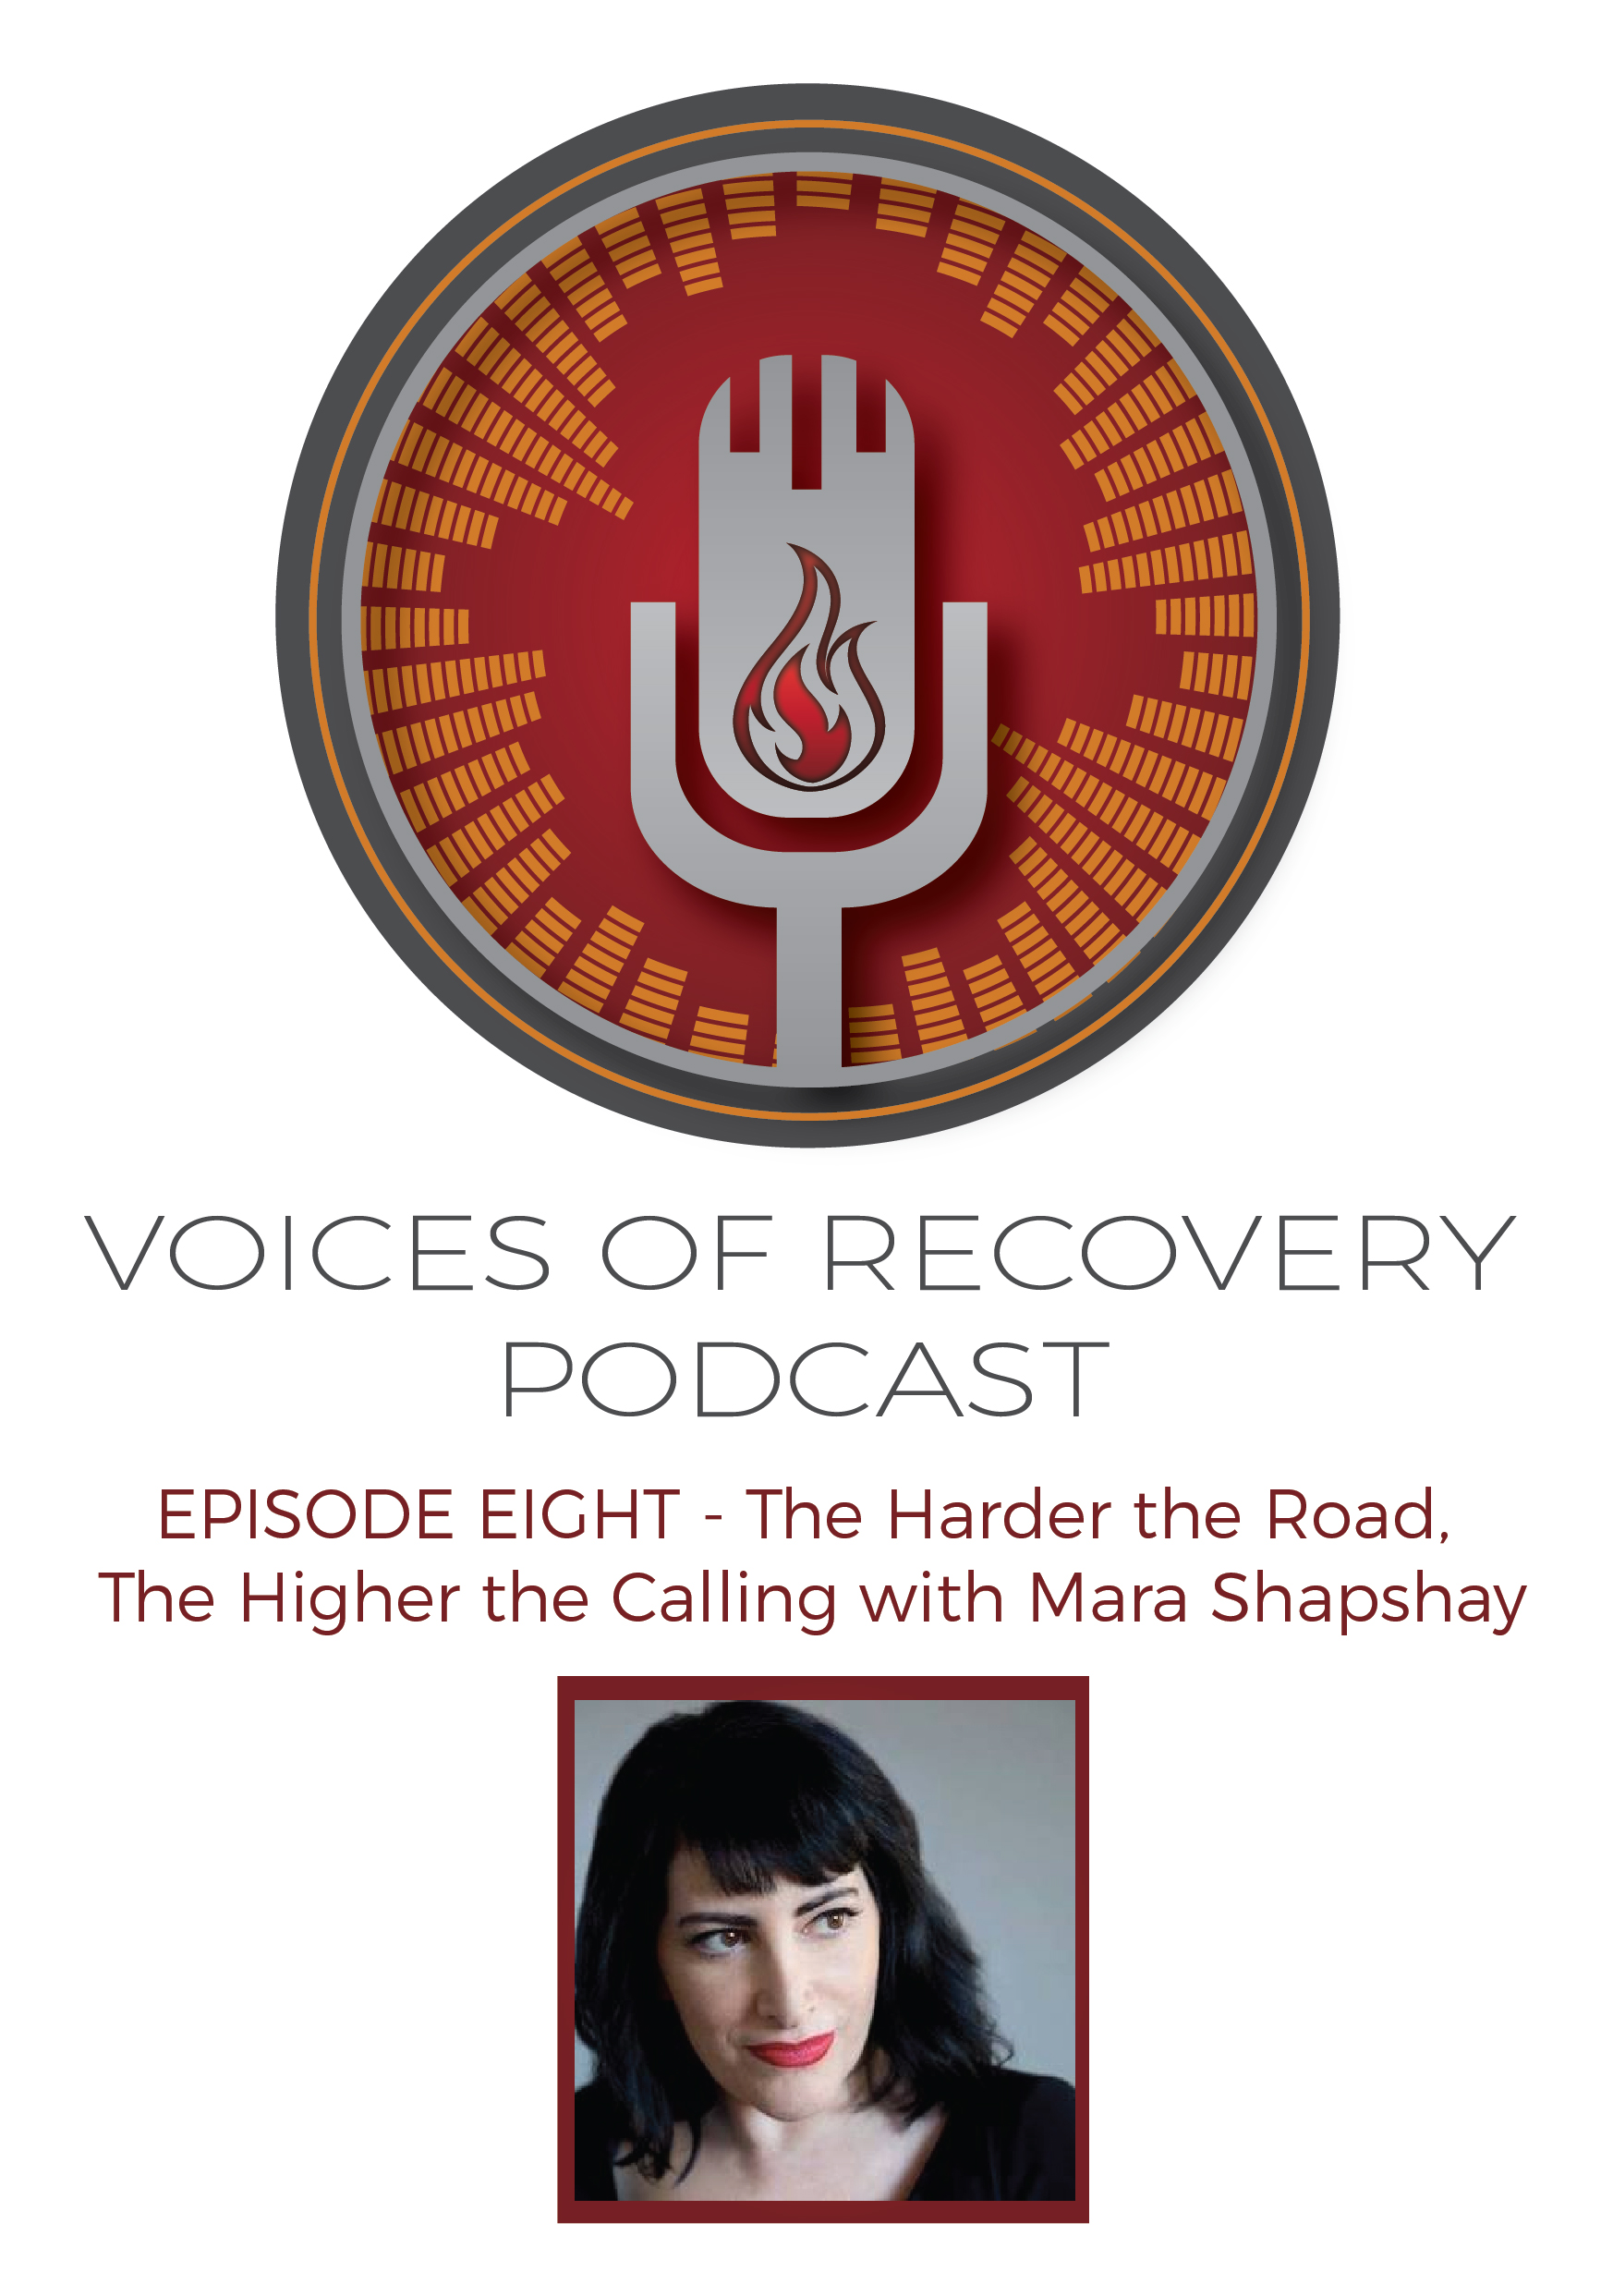 Voices of Recovery Episode 8: The Harder the Road, The Higher the Calling with Mara Shapshay